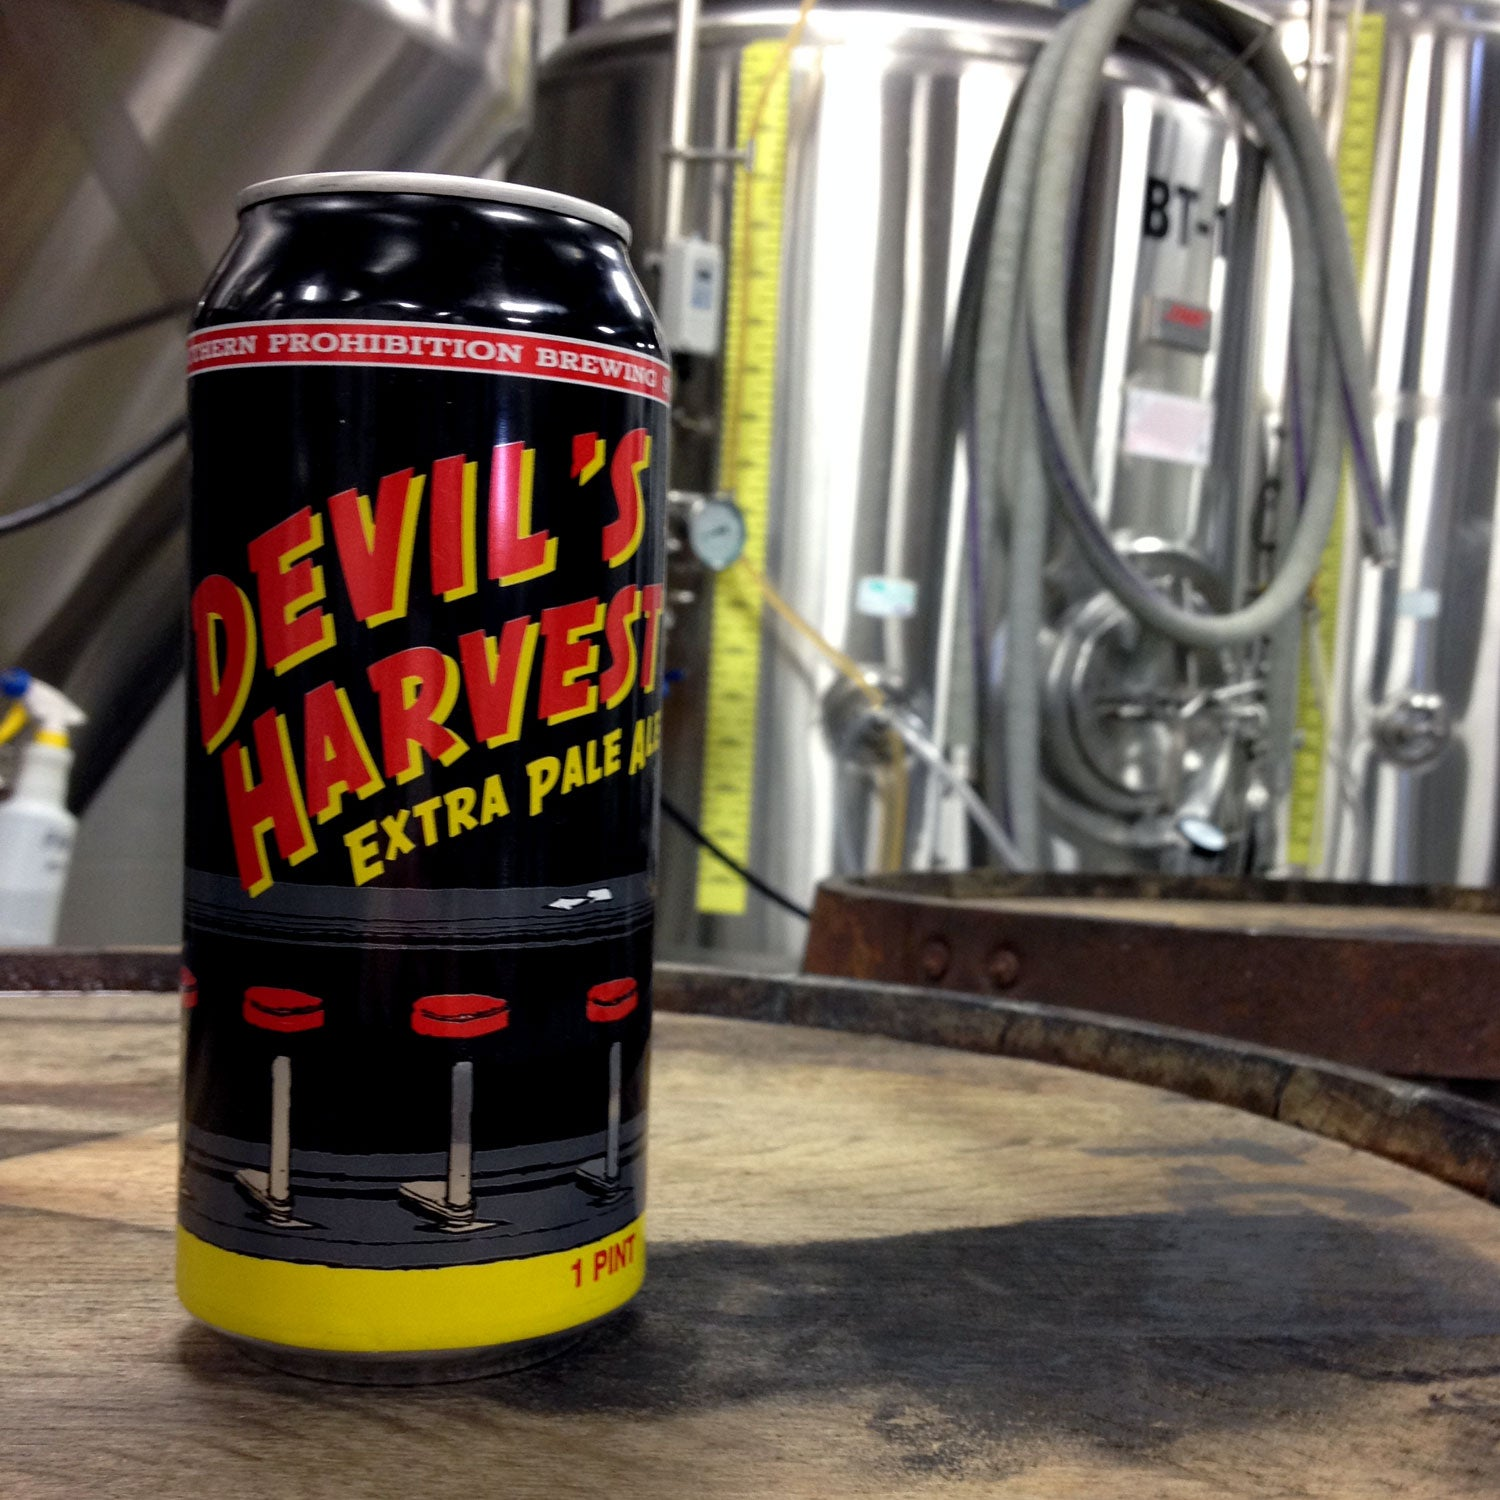 devils harvest extra pale ale southern prohibition brewing outside canned beer spring mountain biking